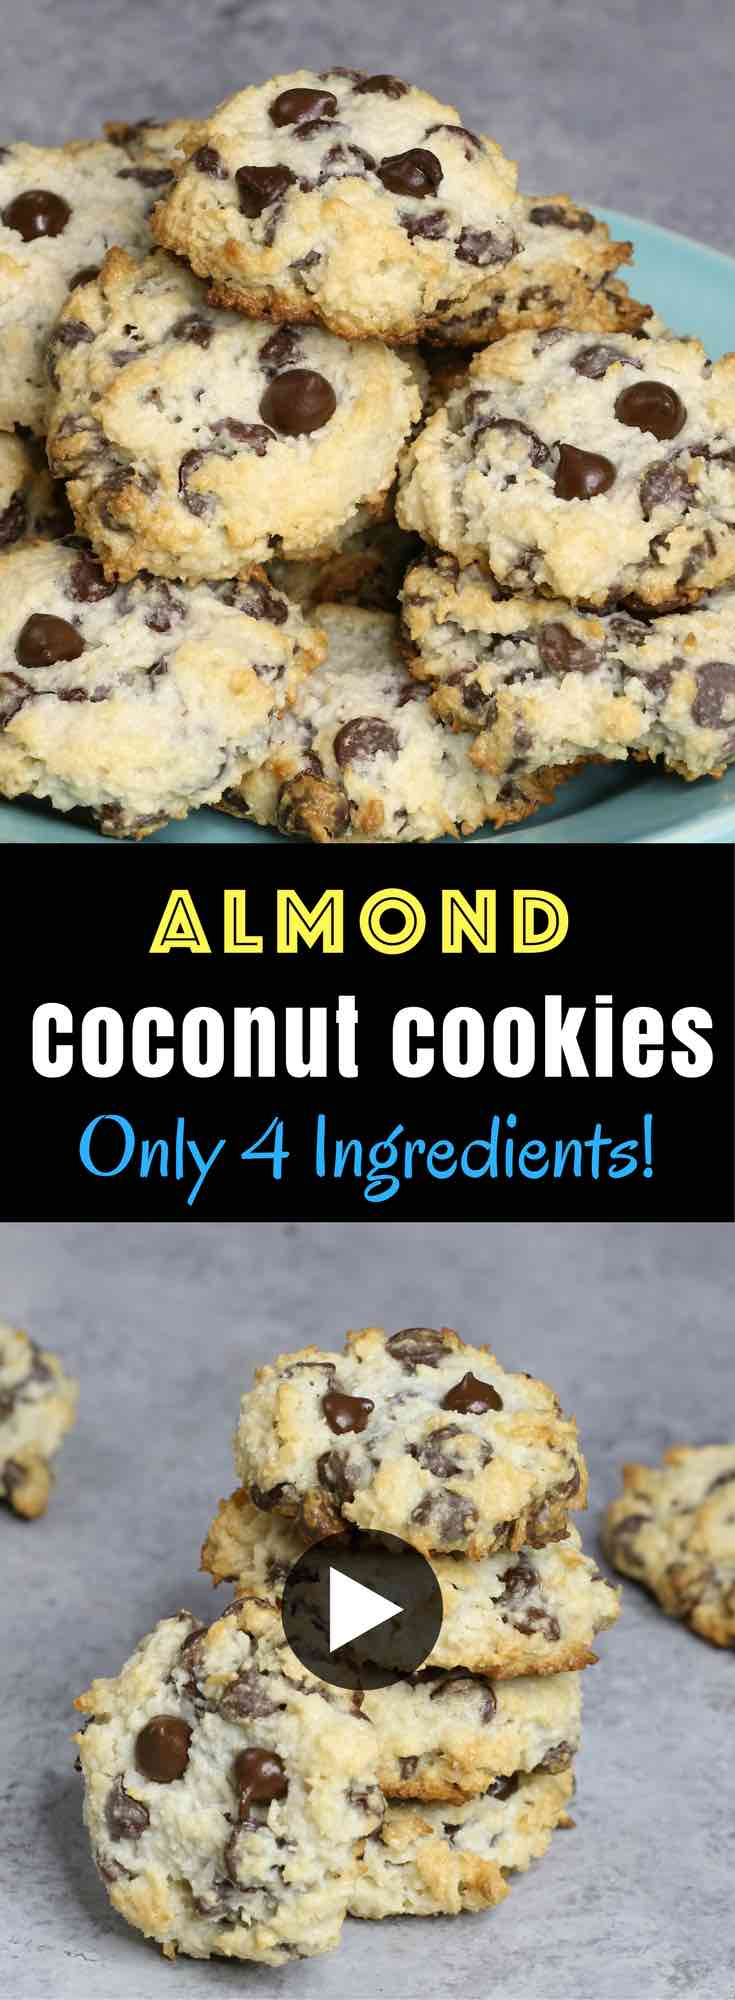 4 Ingredient Chocolate Chip Coconut Cookies Recipe | TipBuzz